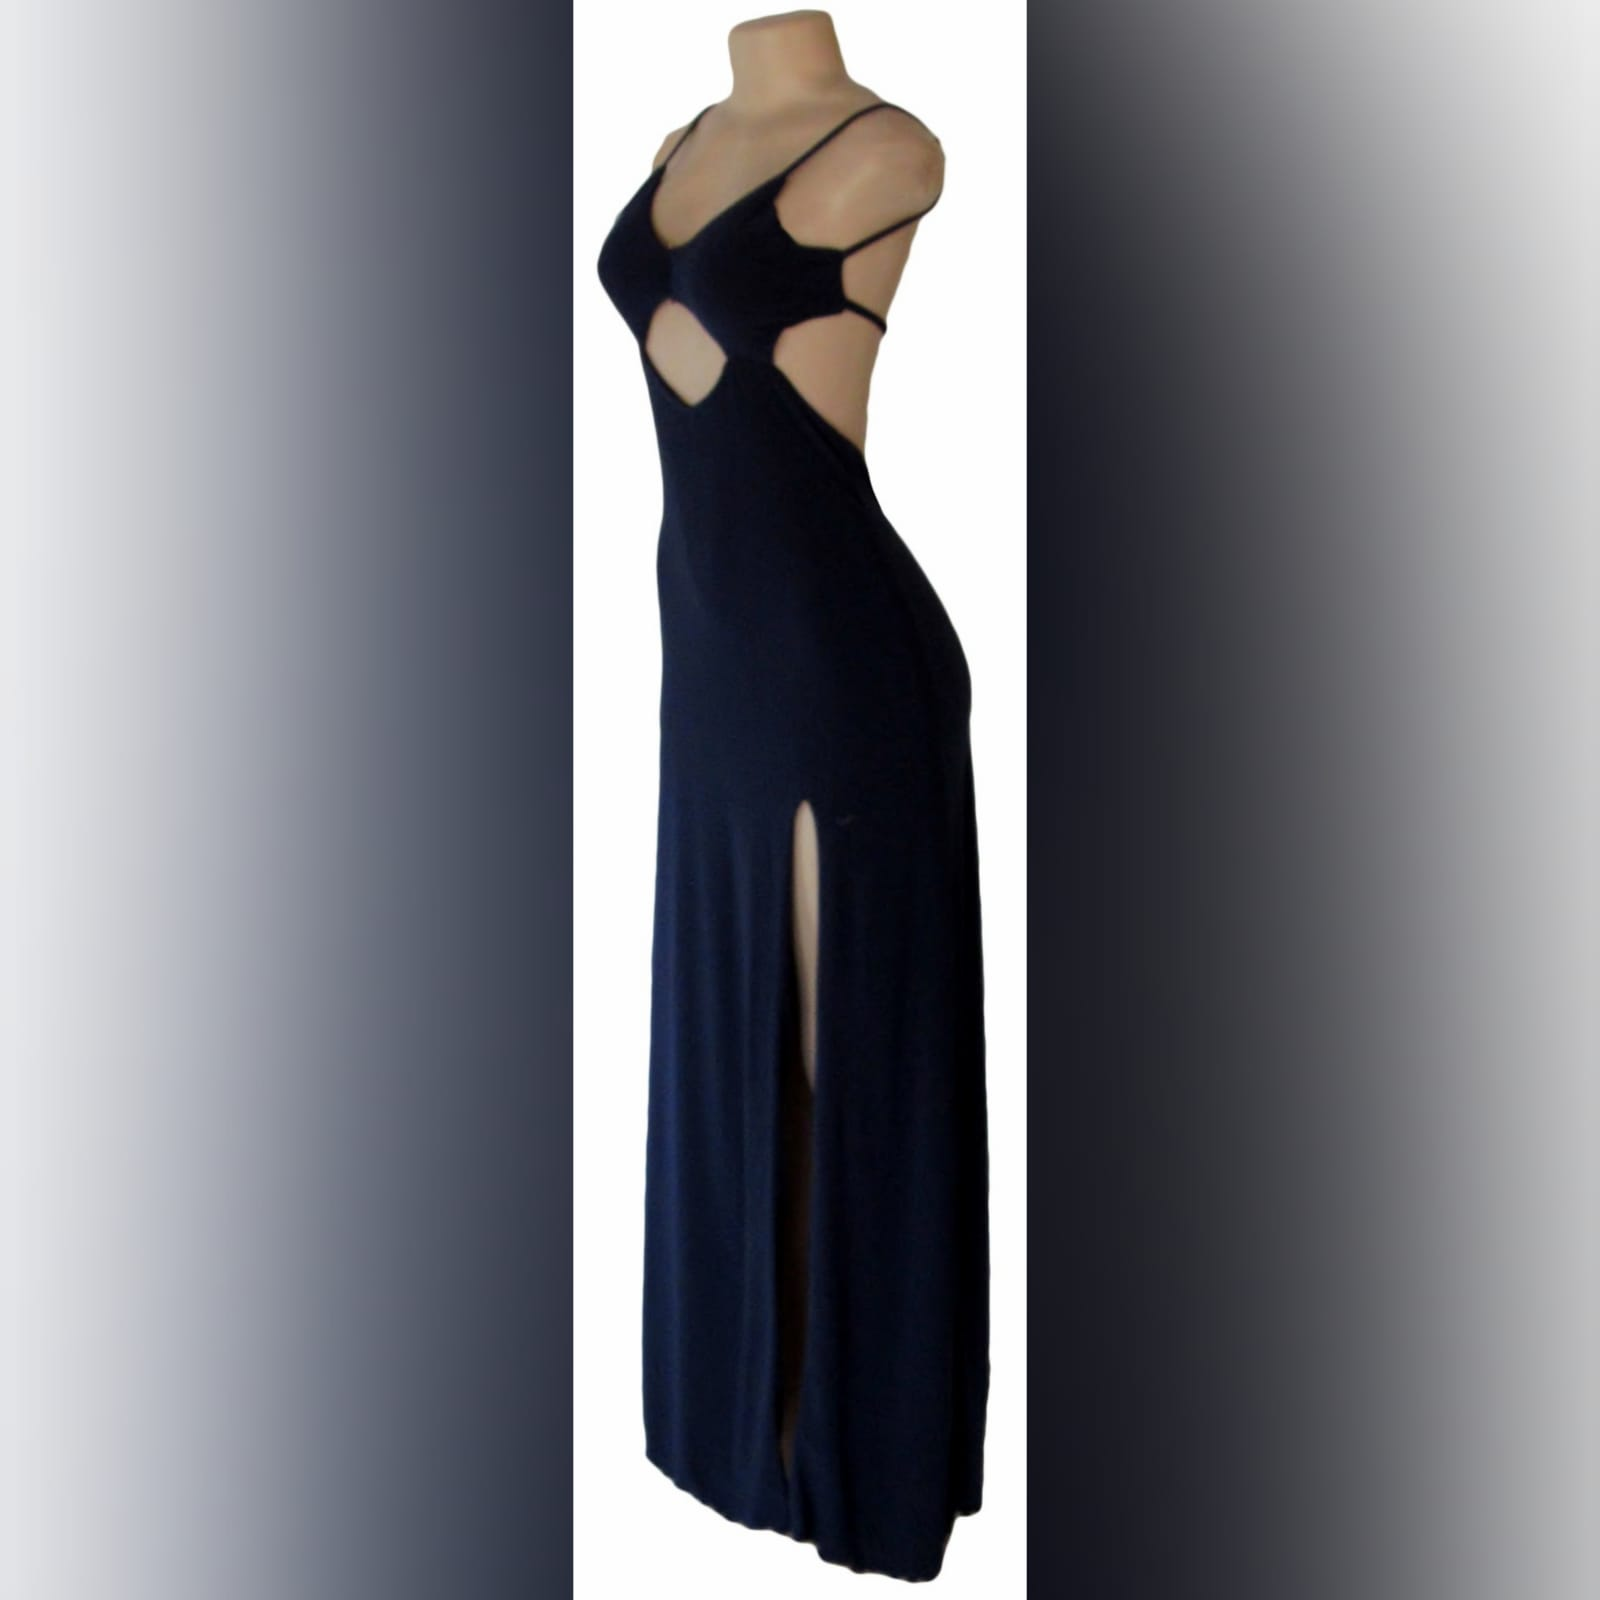 Navy blue long sexy evening dress 4 navy blue long sexy evening dress, with a low open back, side tummy openings and a diamond shaped opening under the bust. With a high slit